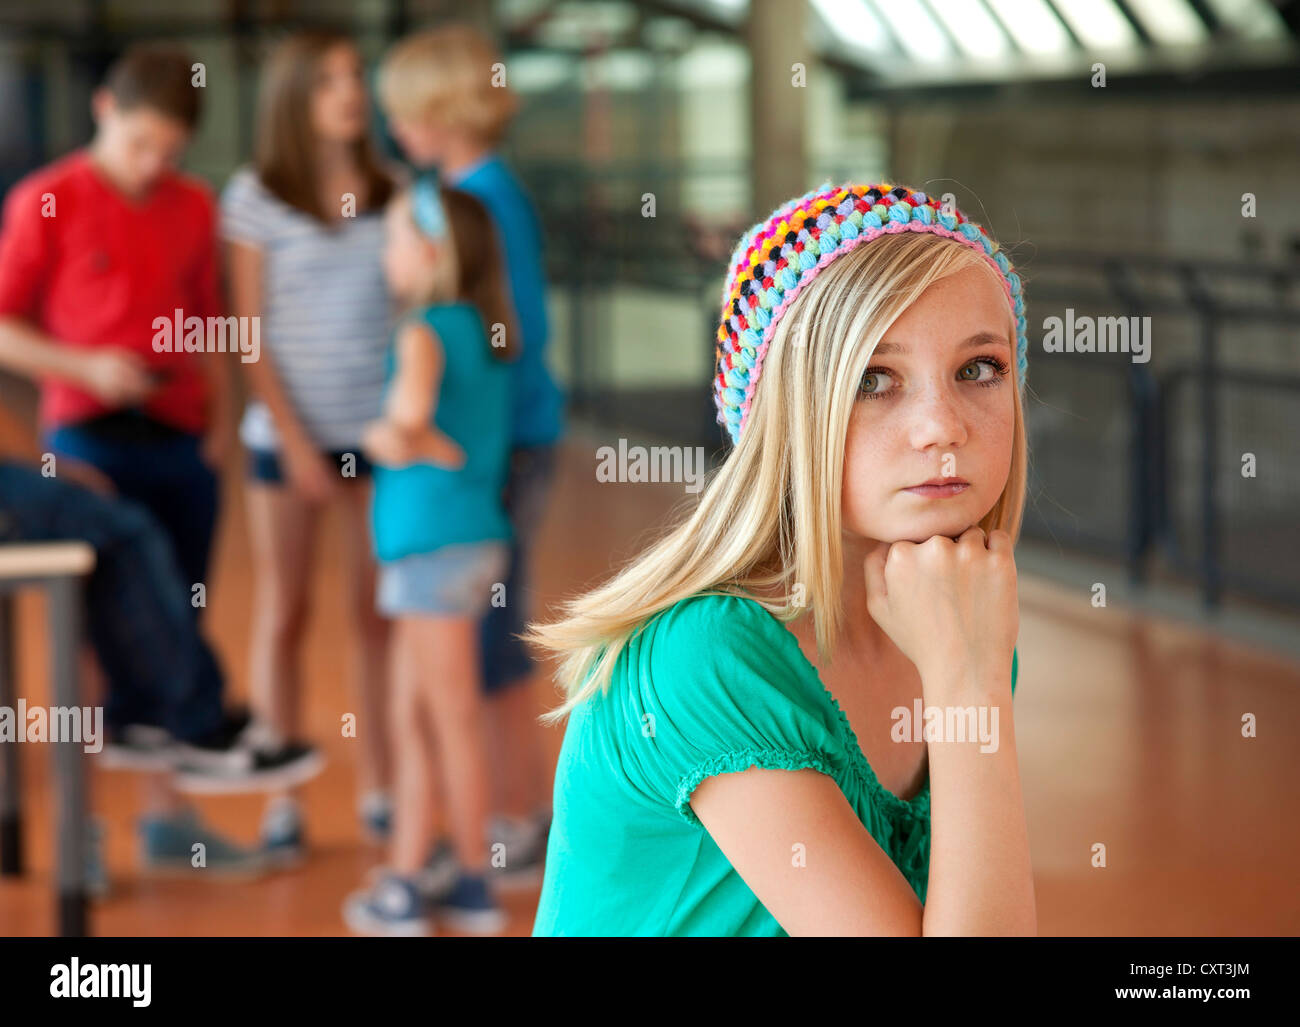 Schoolchildren in a school building, one girl looking sad and isolated from the others - Stock Image